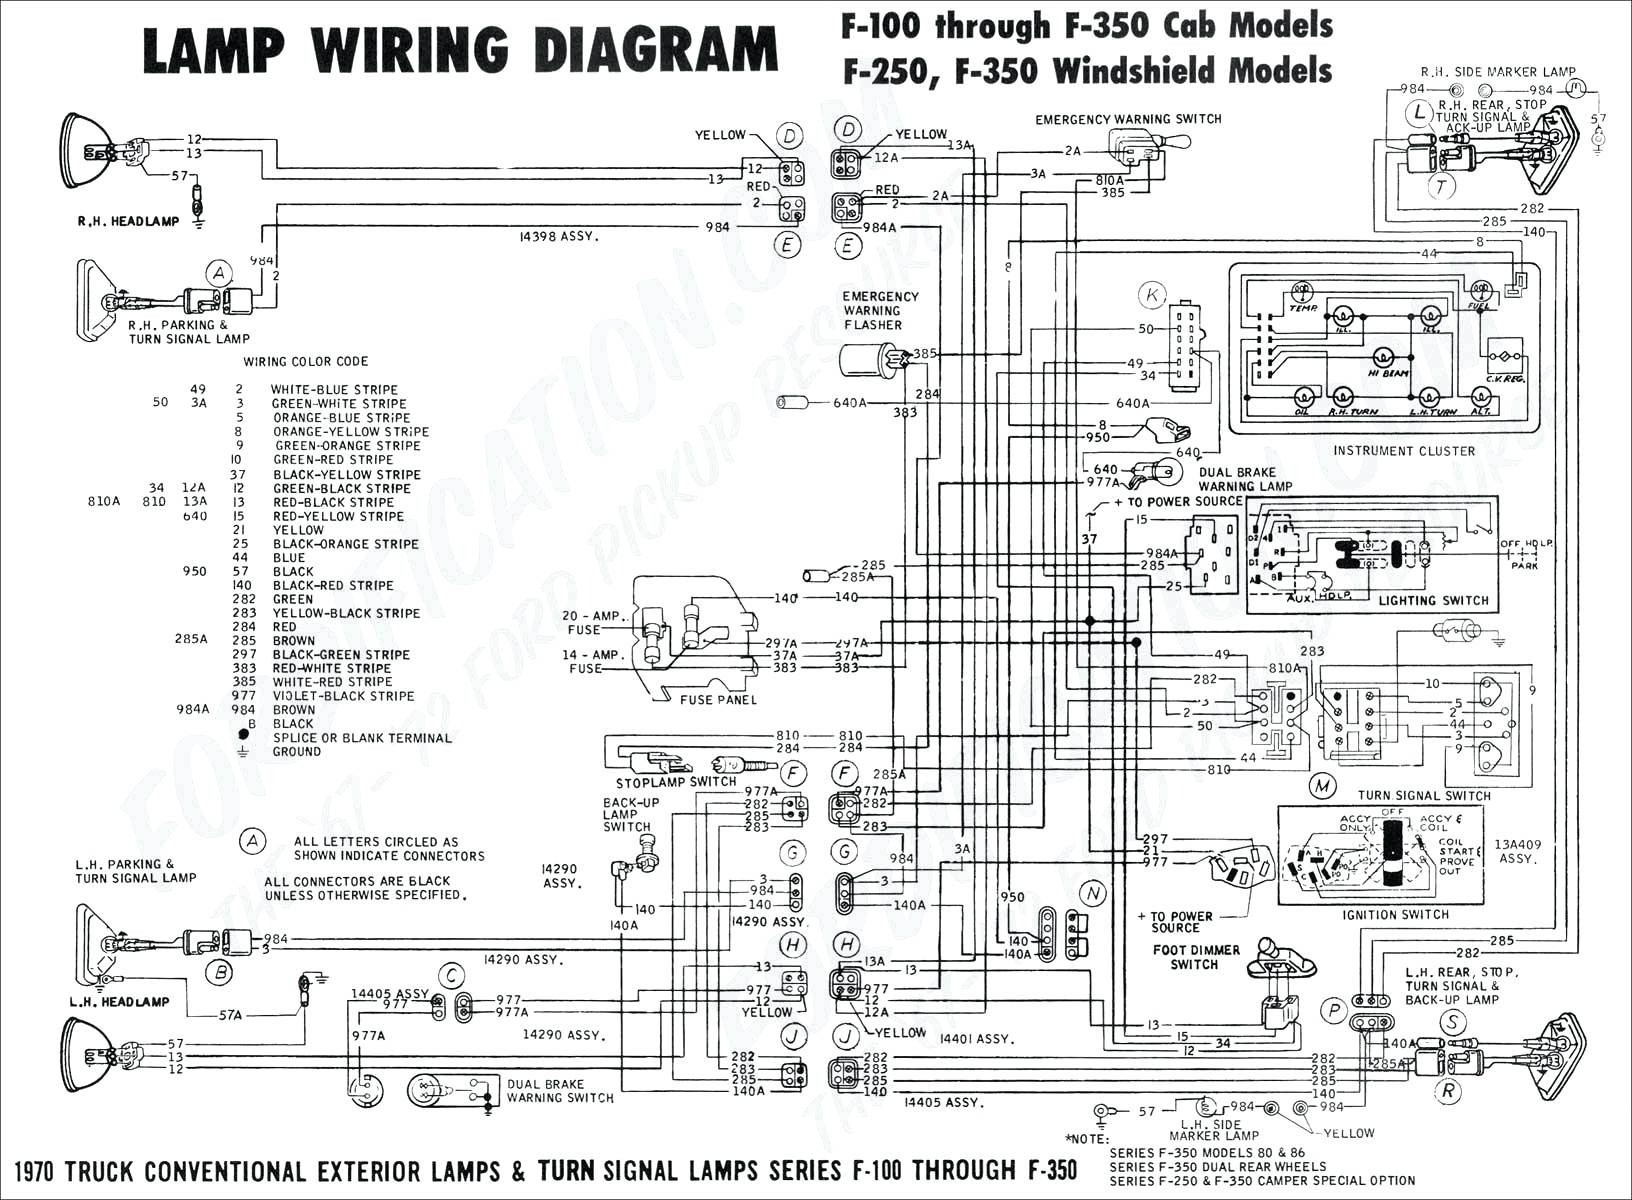 7 Way Semi Trailer Wiring Diagram Simple Semi Trailer Wiring Diagram - Semi Trailer Wiring Diagram 7 Way